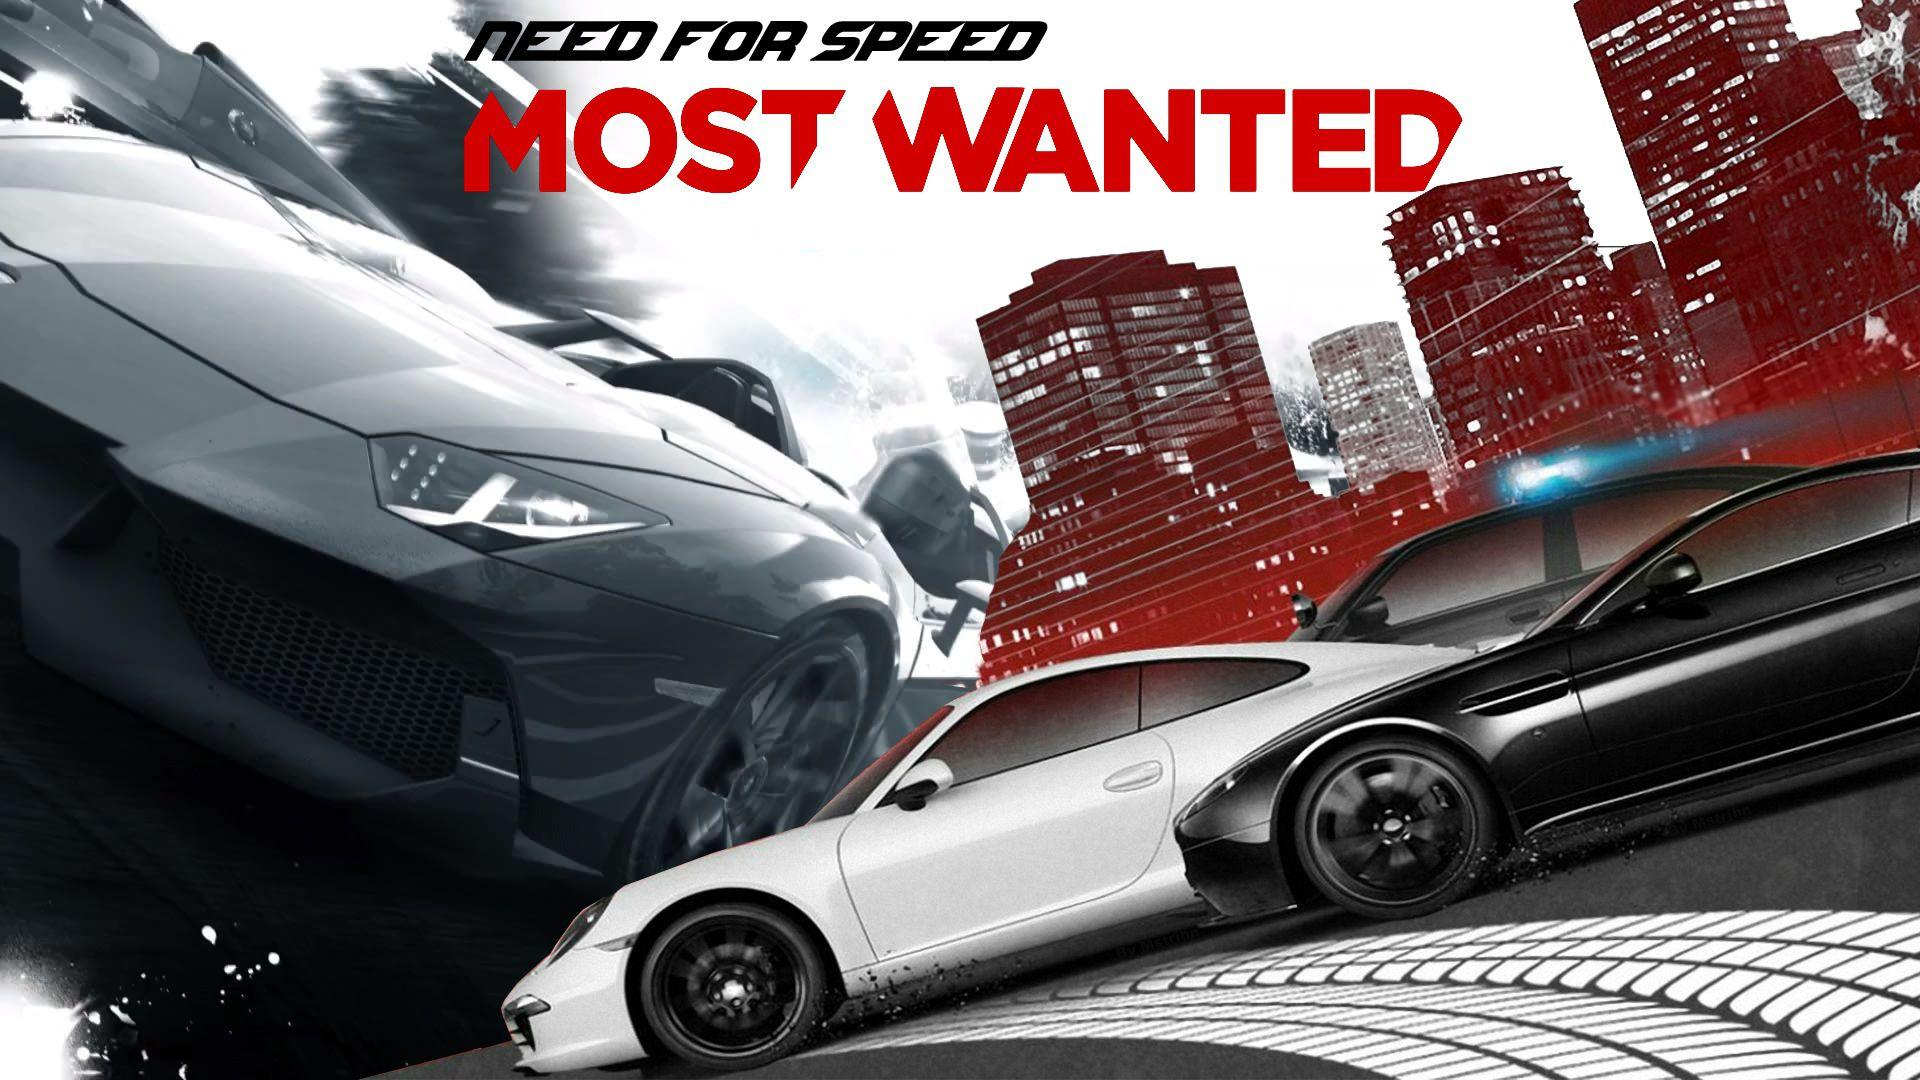 Need for Speed Most Wanted HD Big Wallpapers 2014